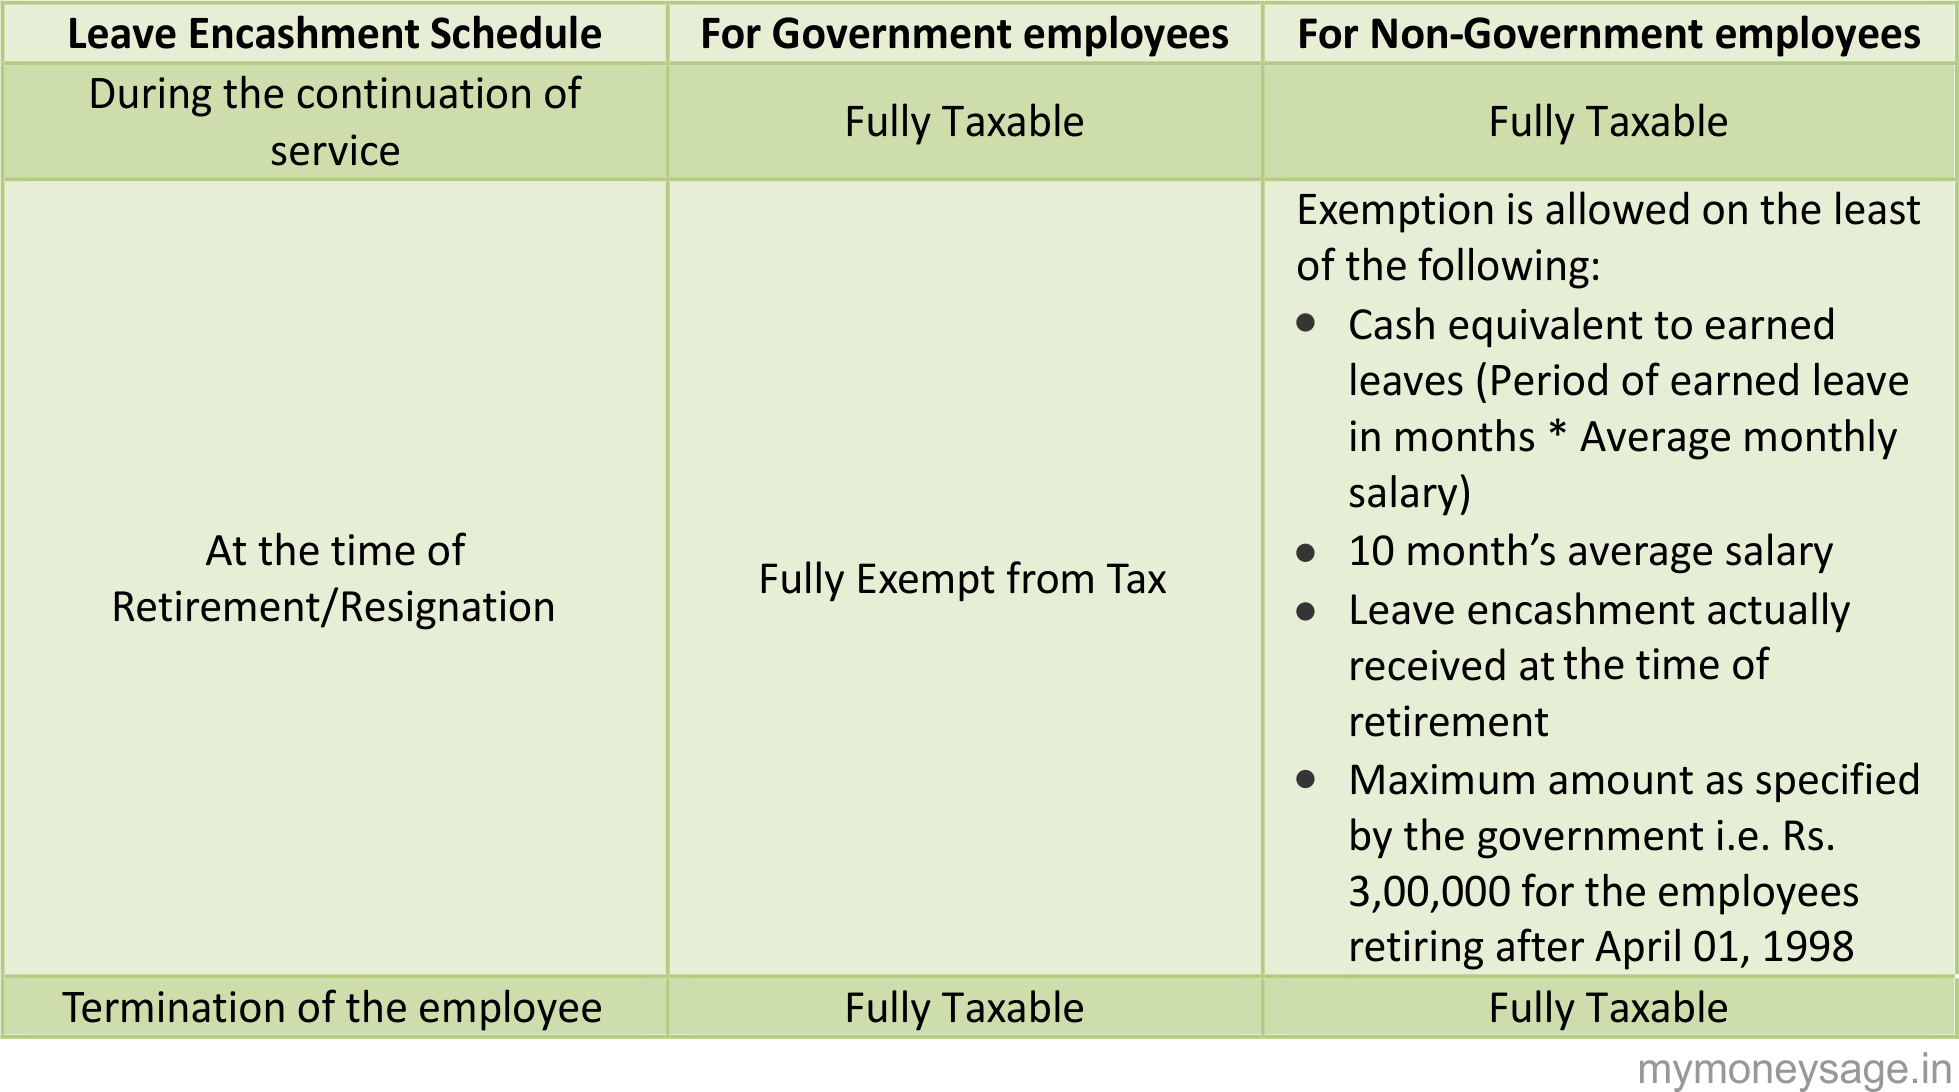 Tax Implication on Leave Encashment